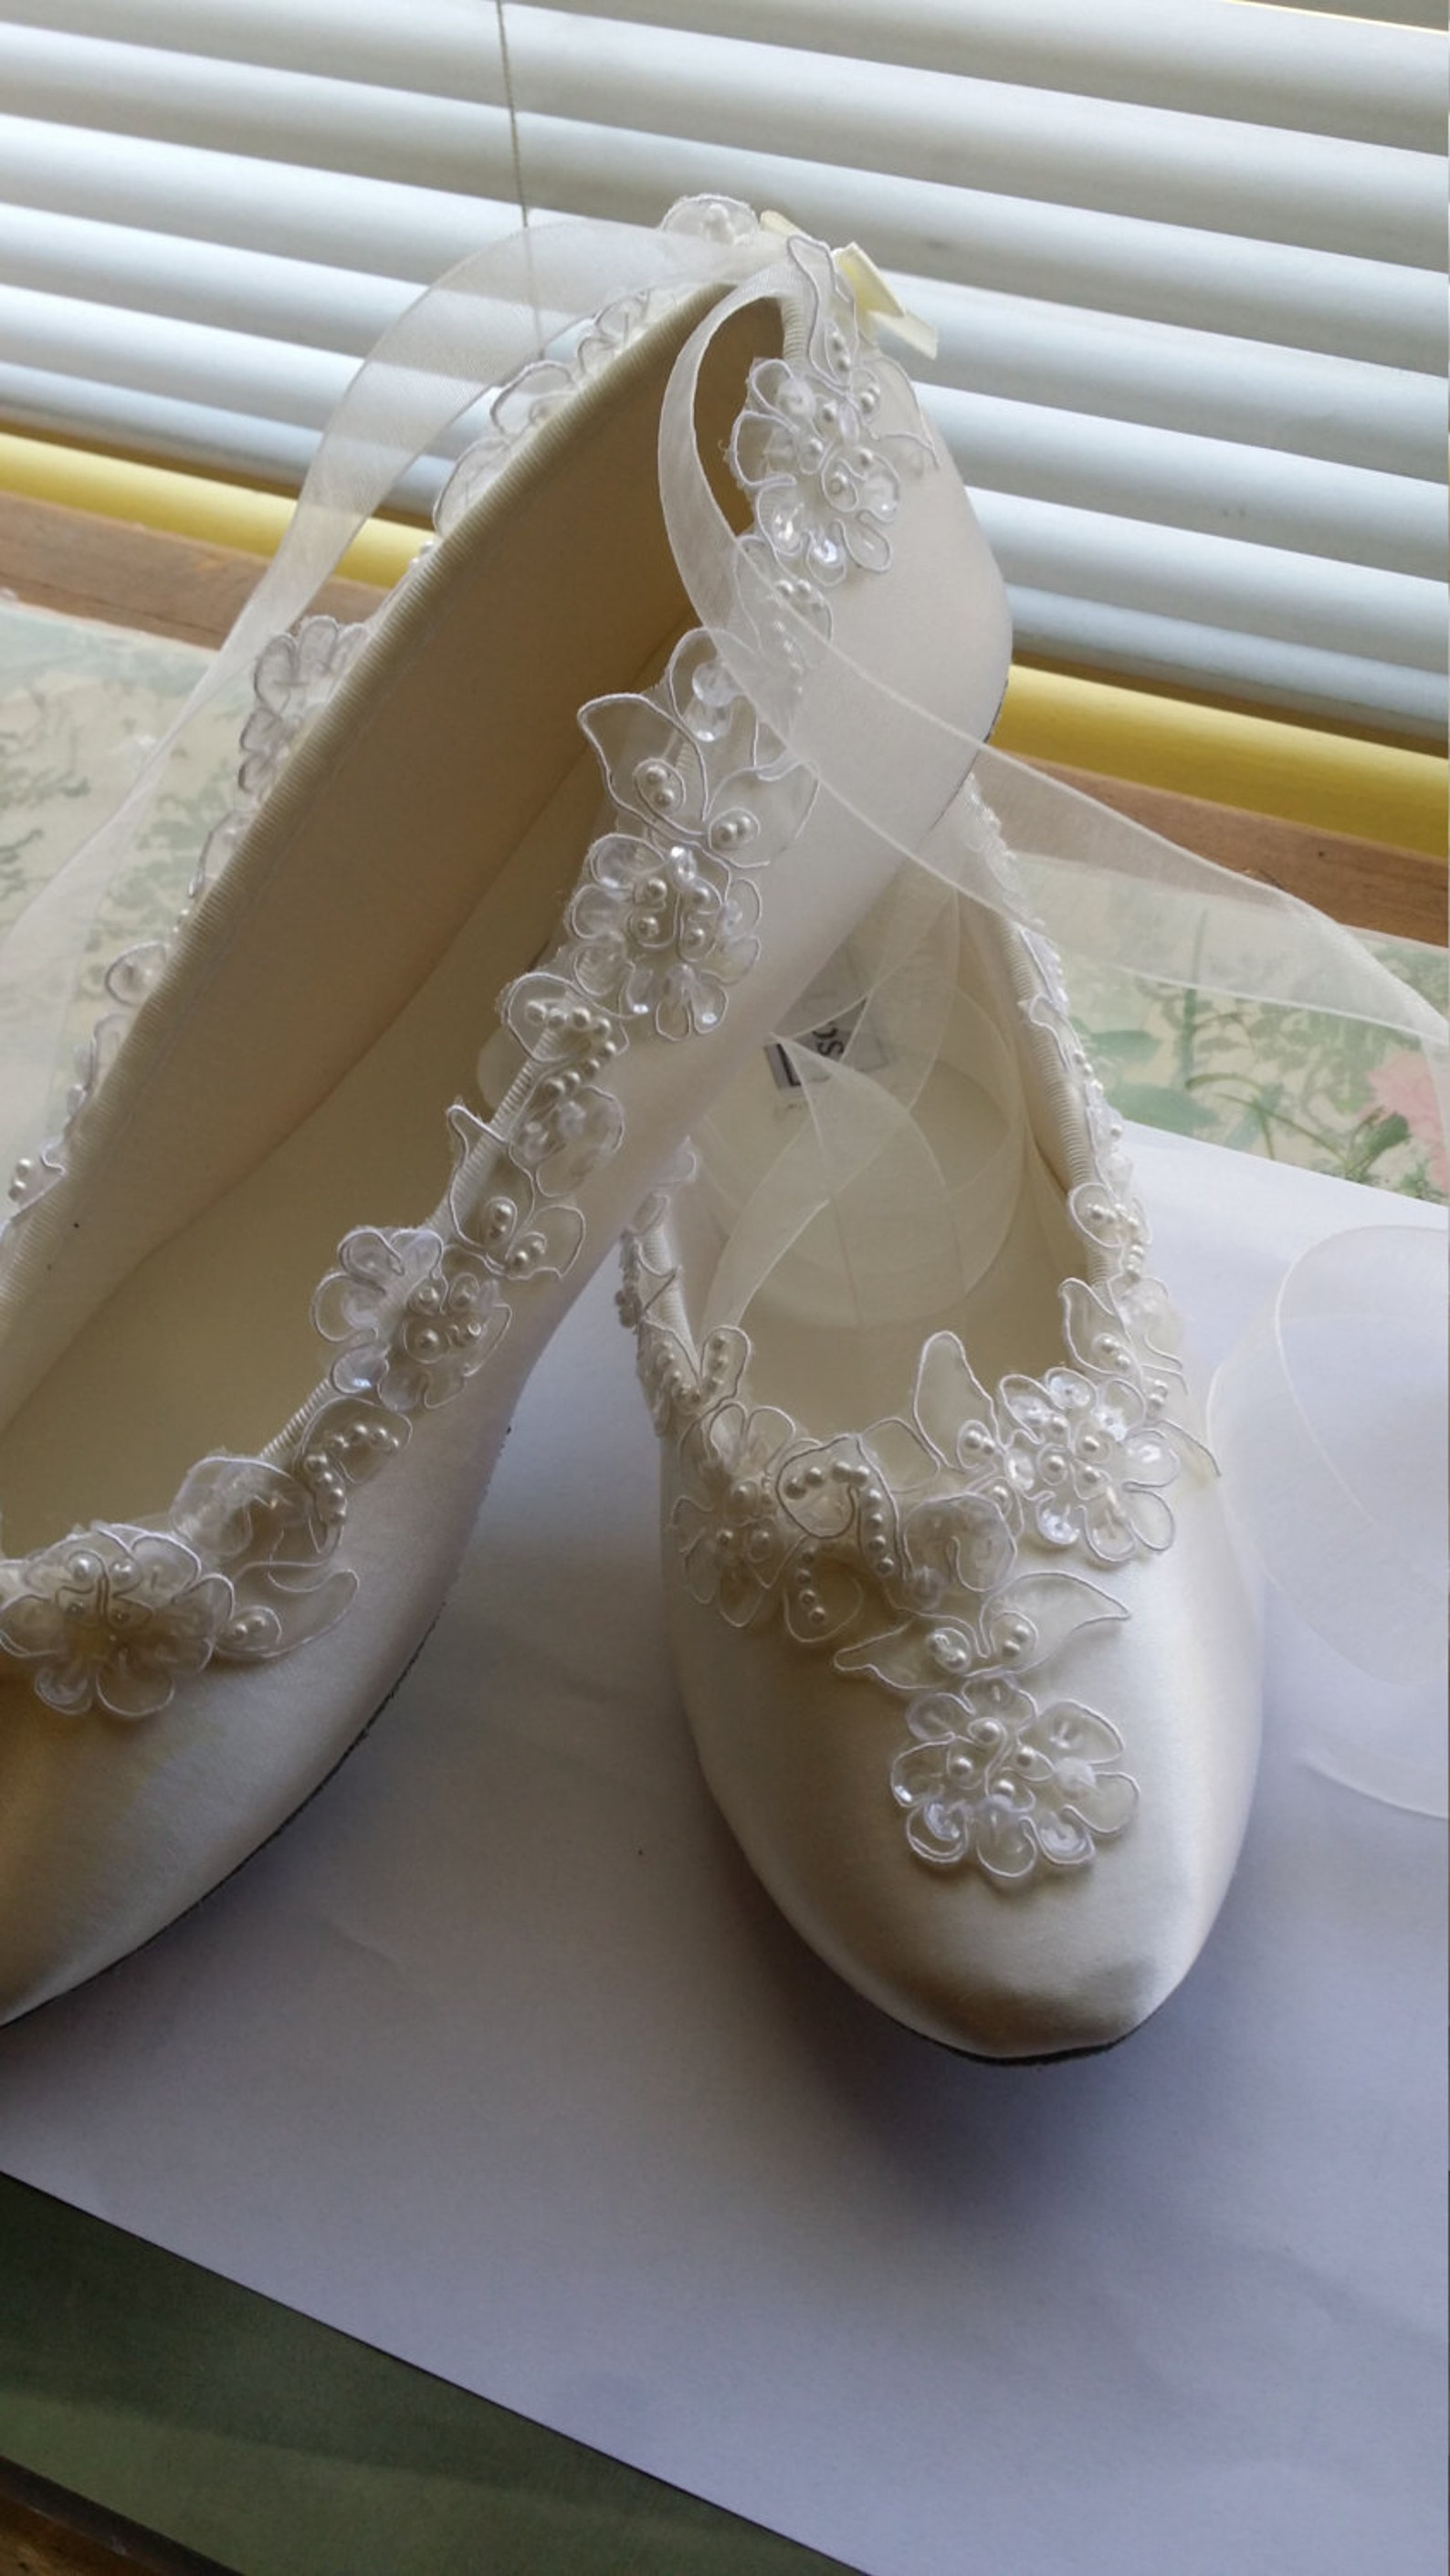 brides satin wedding flats white silver edging appliqué, white satin ballet style slippers, lace flowers all along edge. romanti